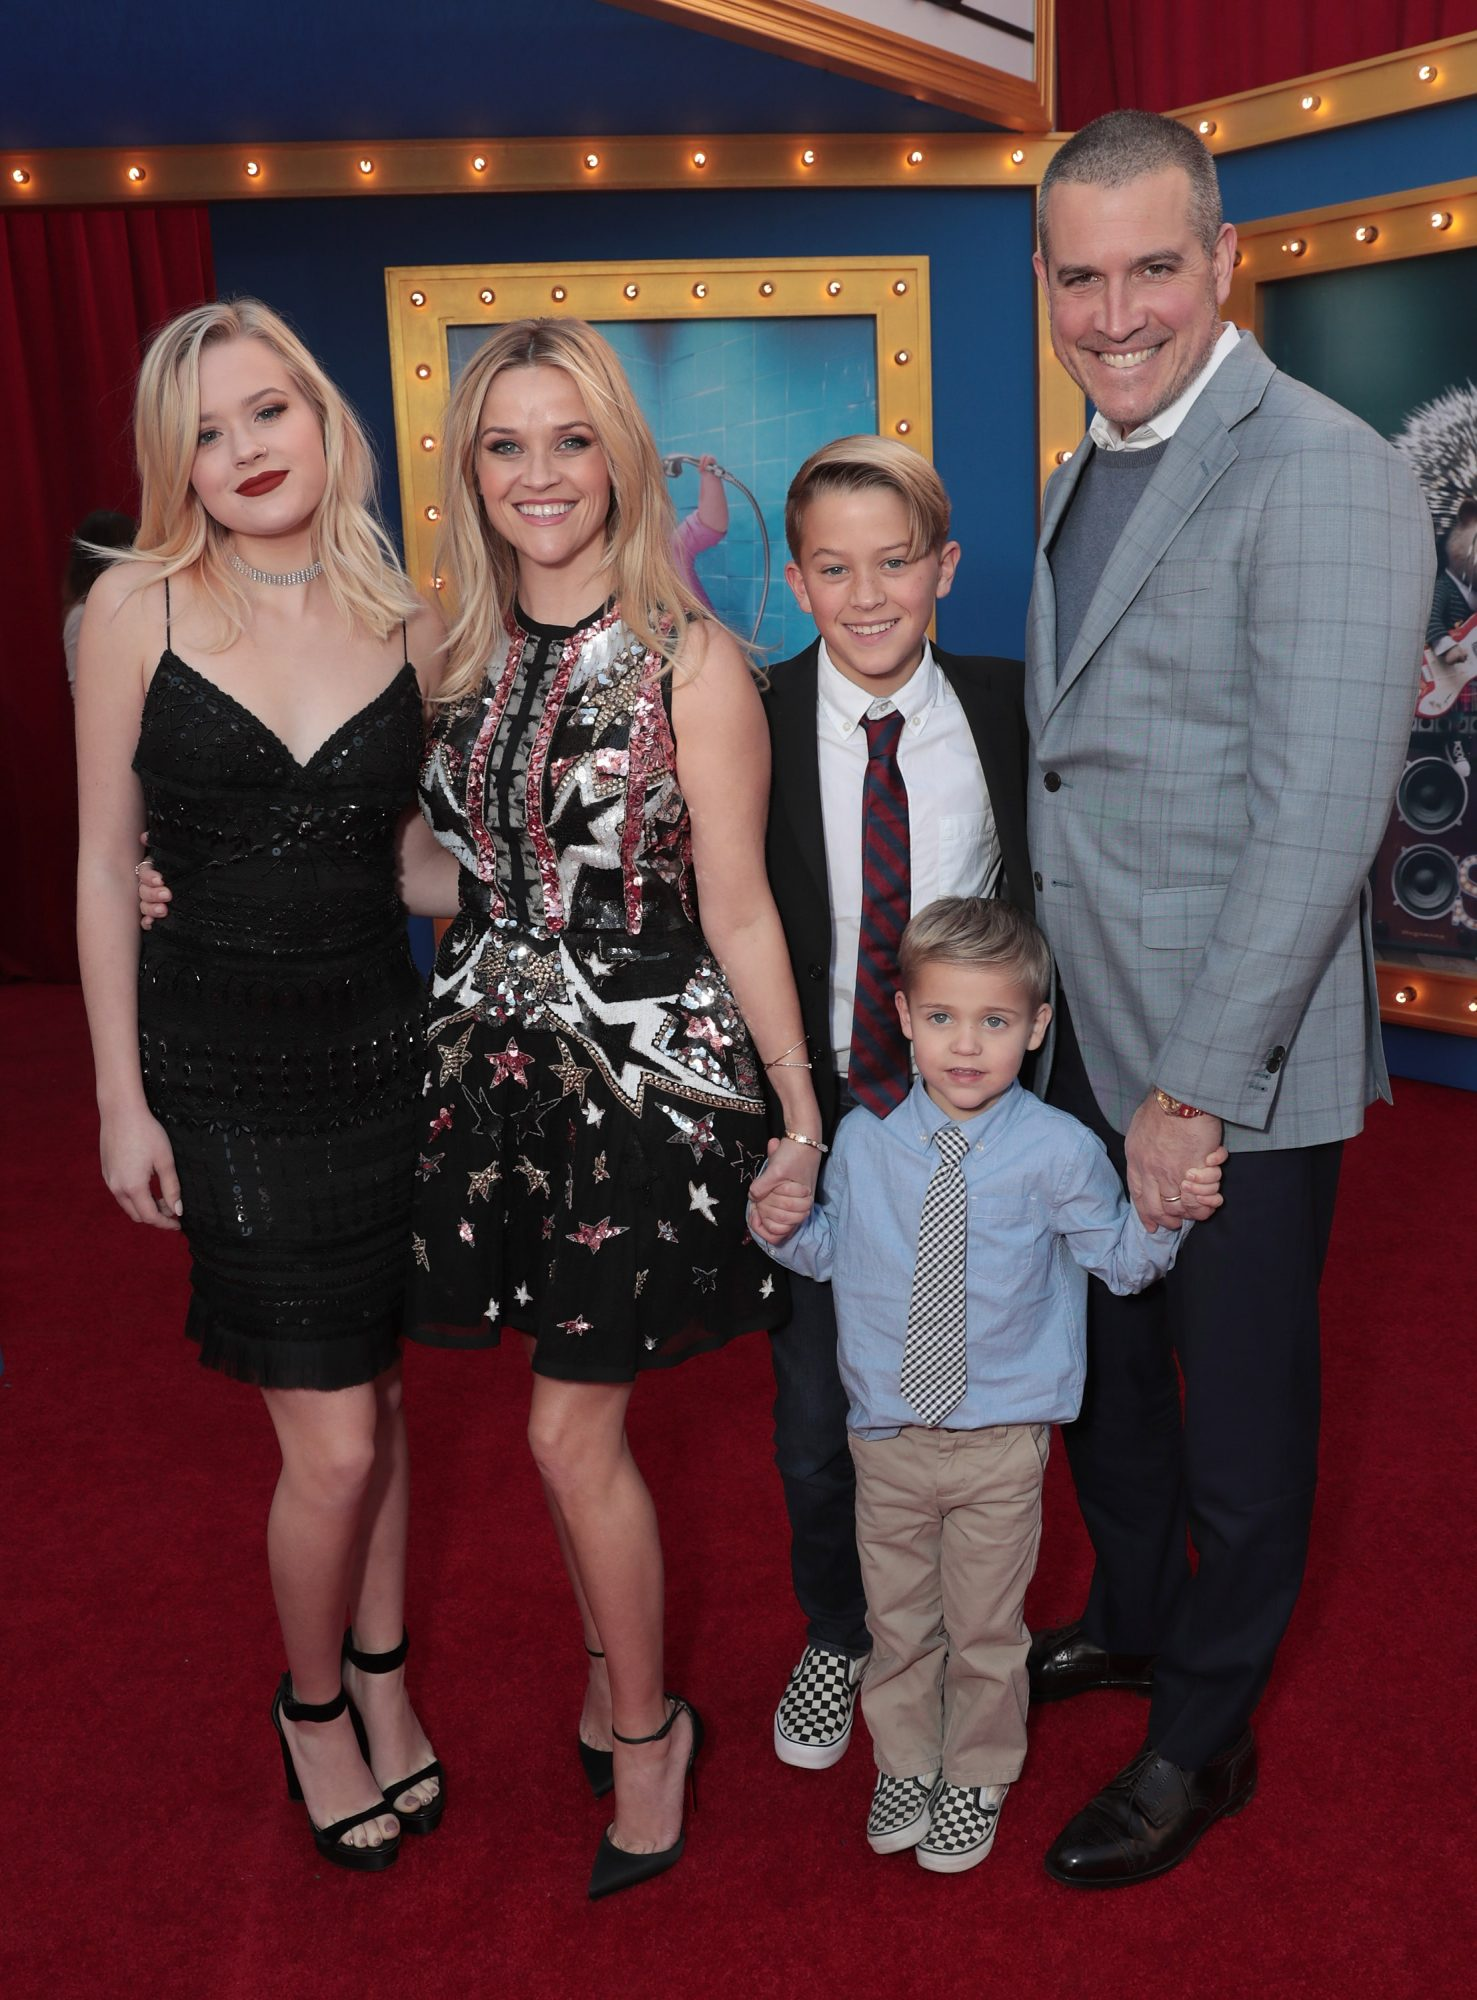 Ava Phillippe, Reese Witherspoon, Deacon Phillippe, Tennessee James Toth and Jim Toth attend the premiere Of Universal Pictures' 'Sing' on December 3, 2016 in Los Angeles, California.